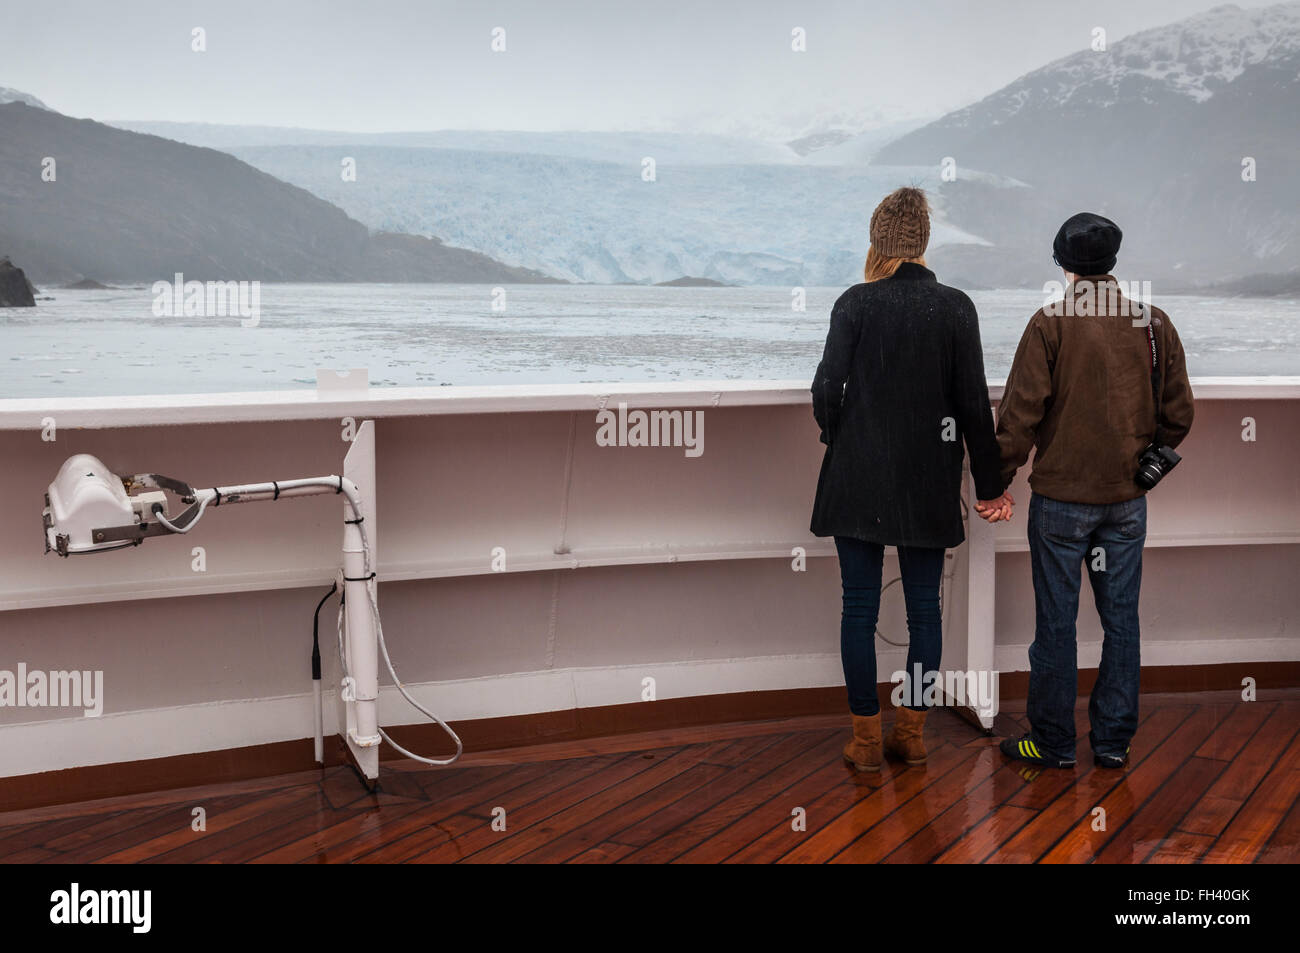 Couple on board the cruise ship Veendam viewing beautiful glacier. - Stock Image